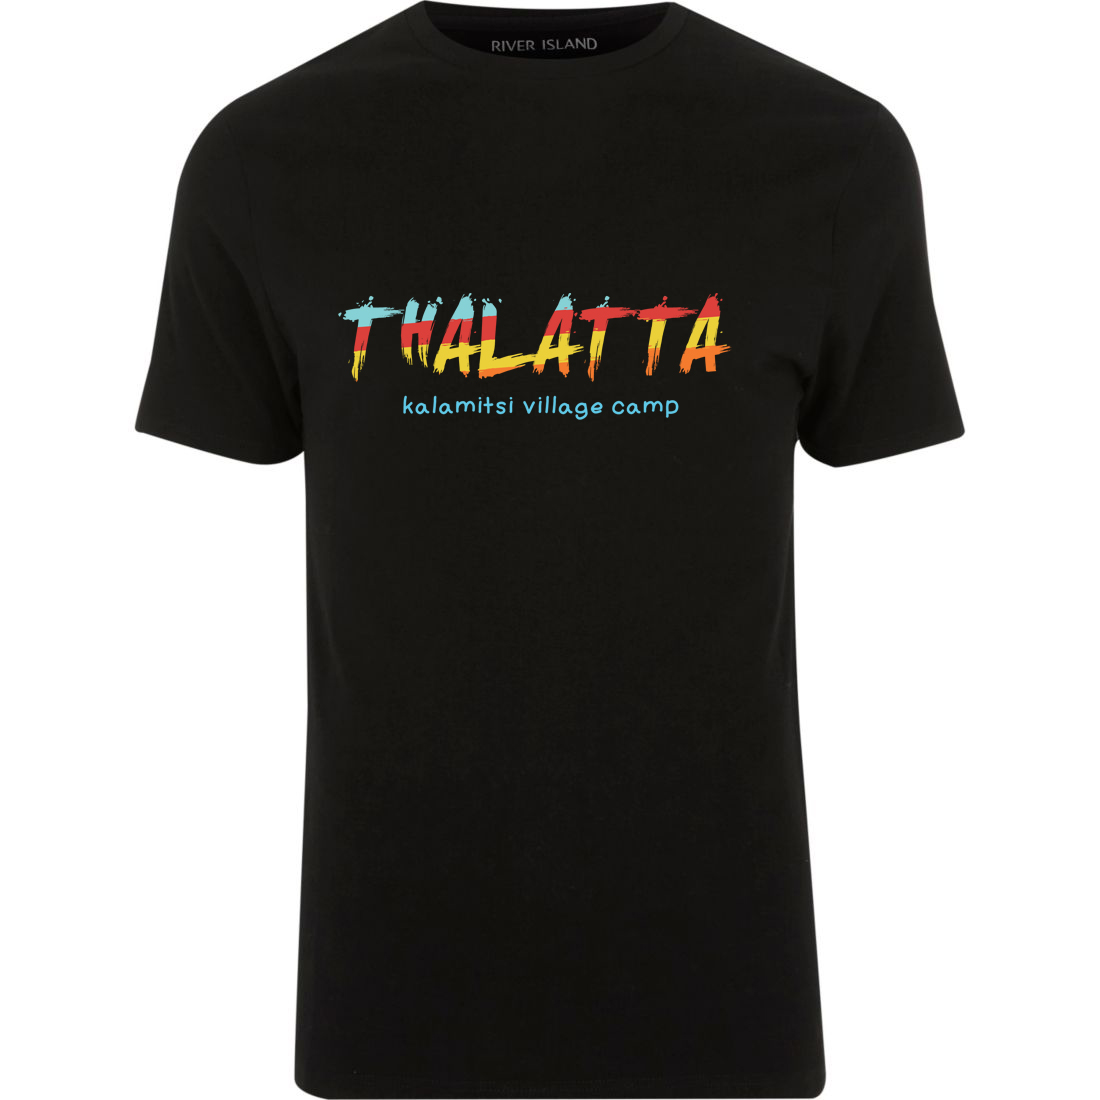 Thalatta Camp T-Shirt (Black) Orders accepted after 22/04/18